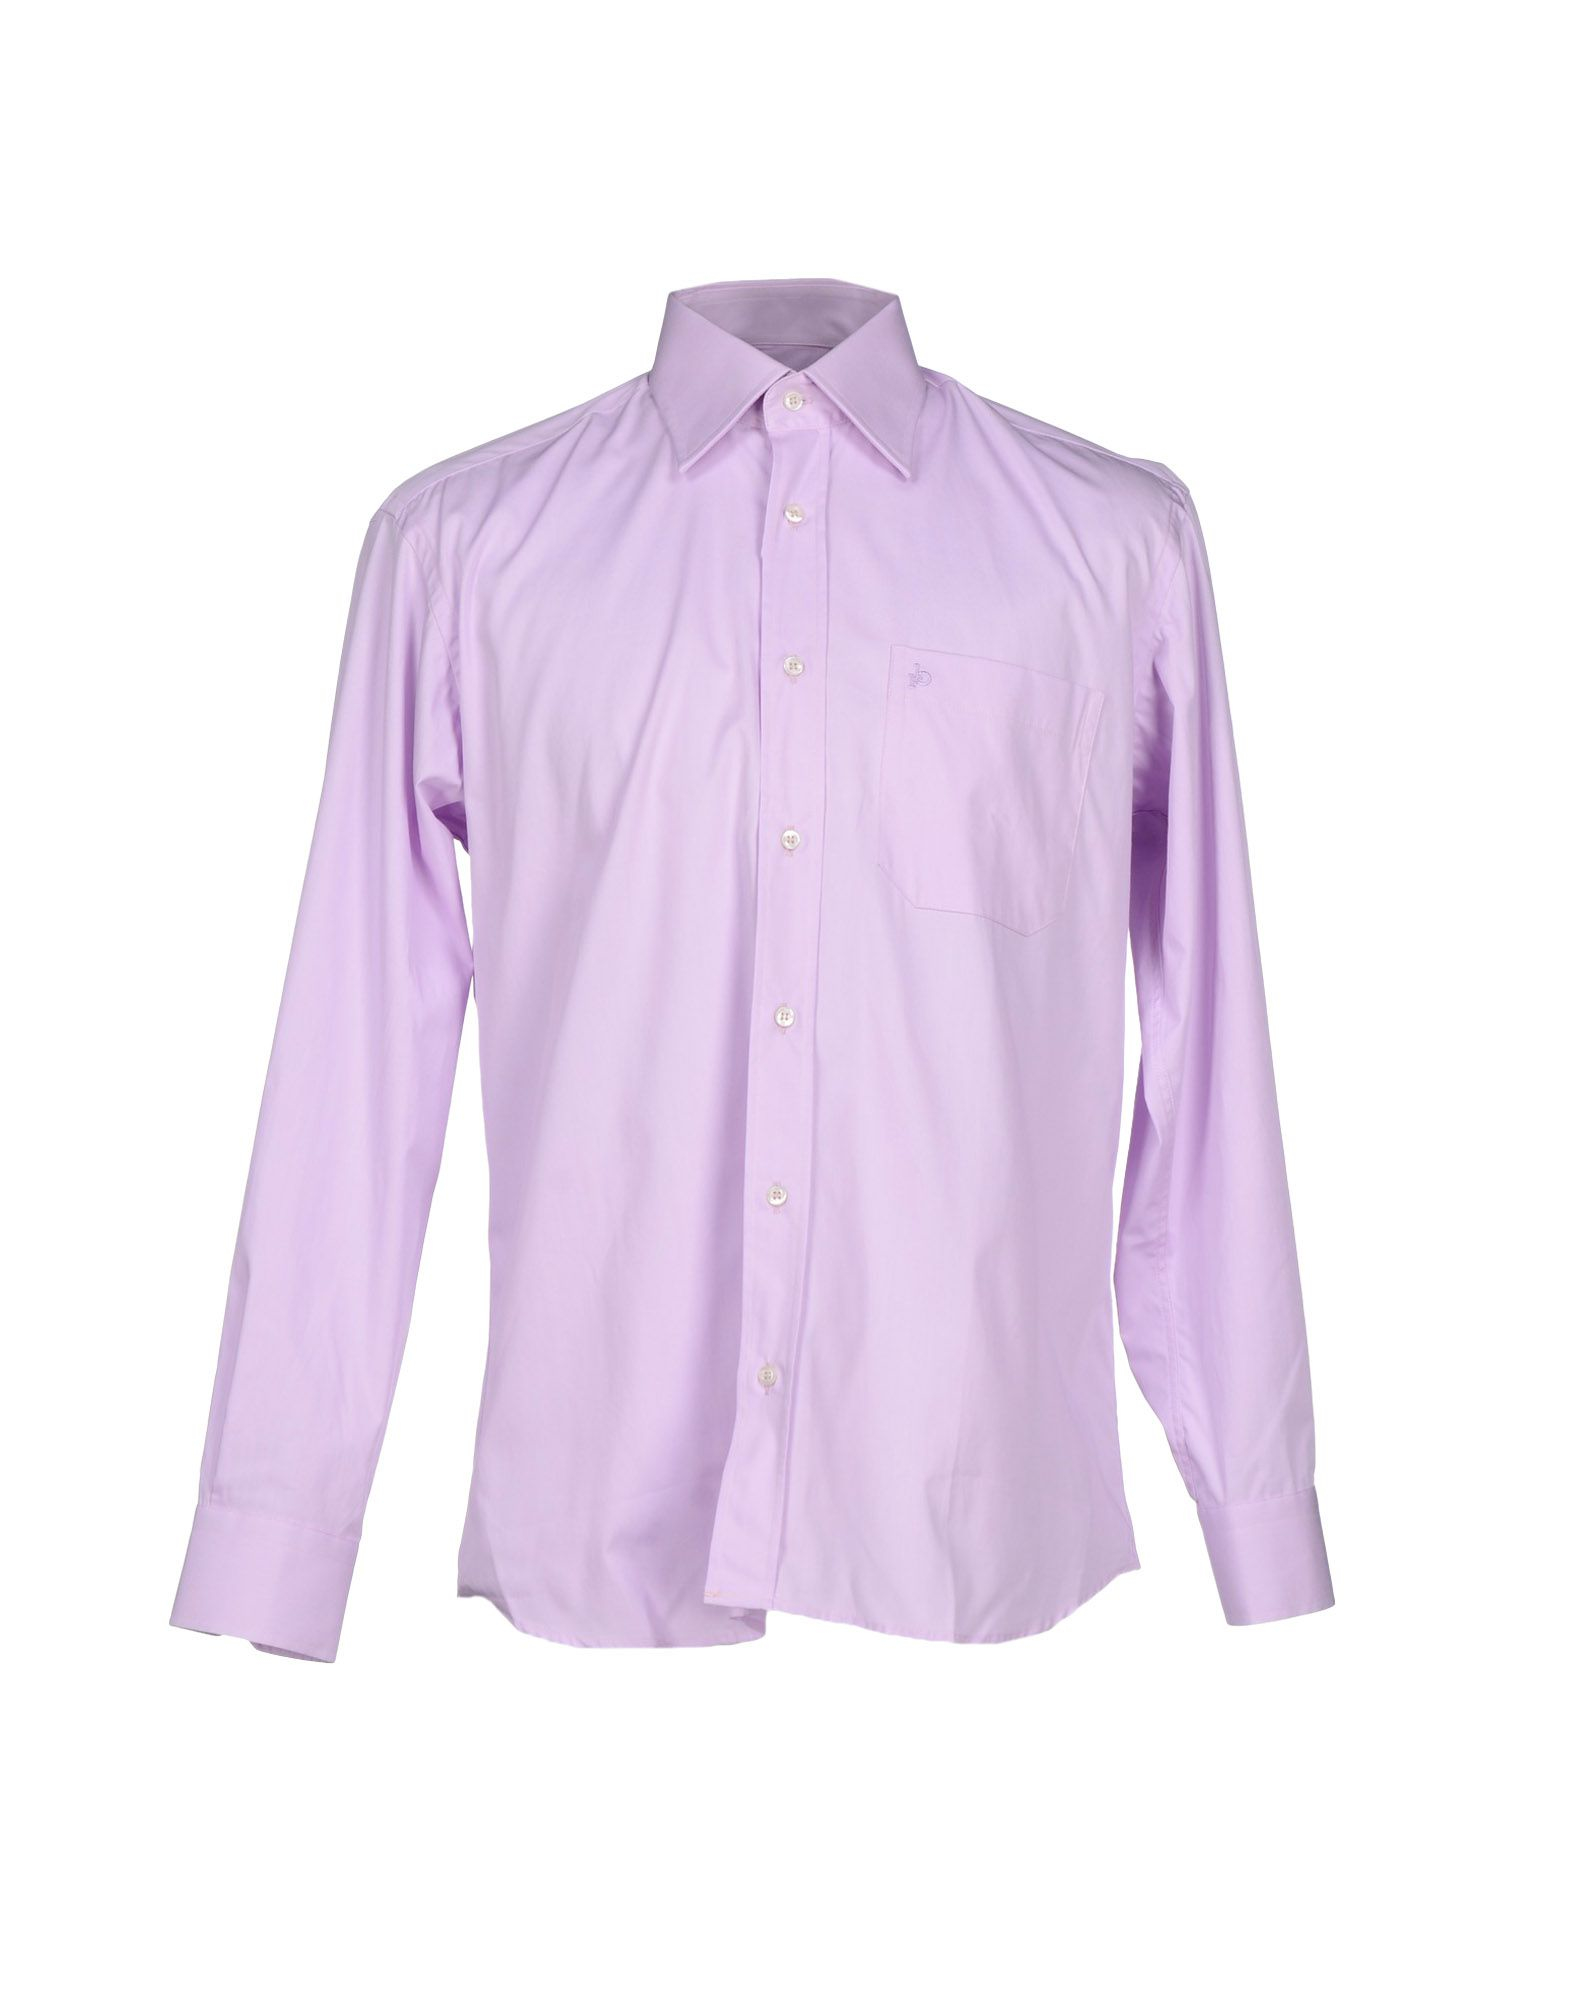 Roccobarocco Shirt In Purple For Men Light Purple Lyst